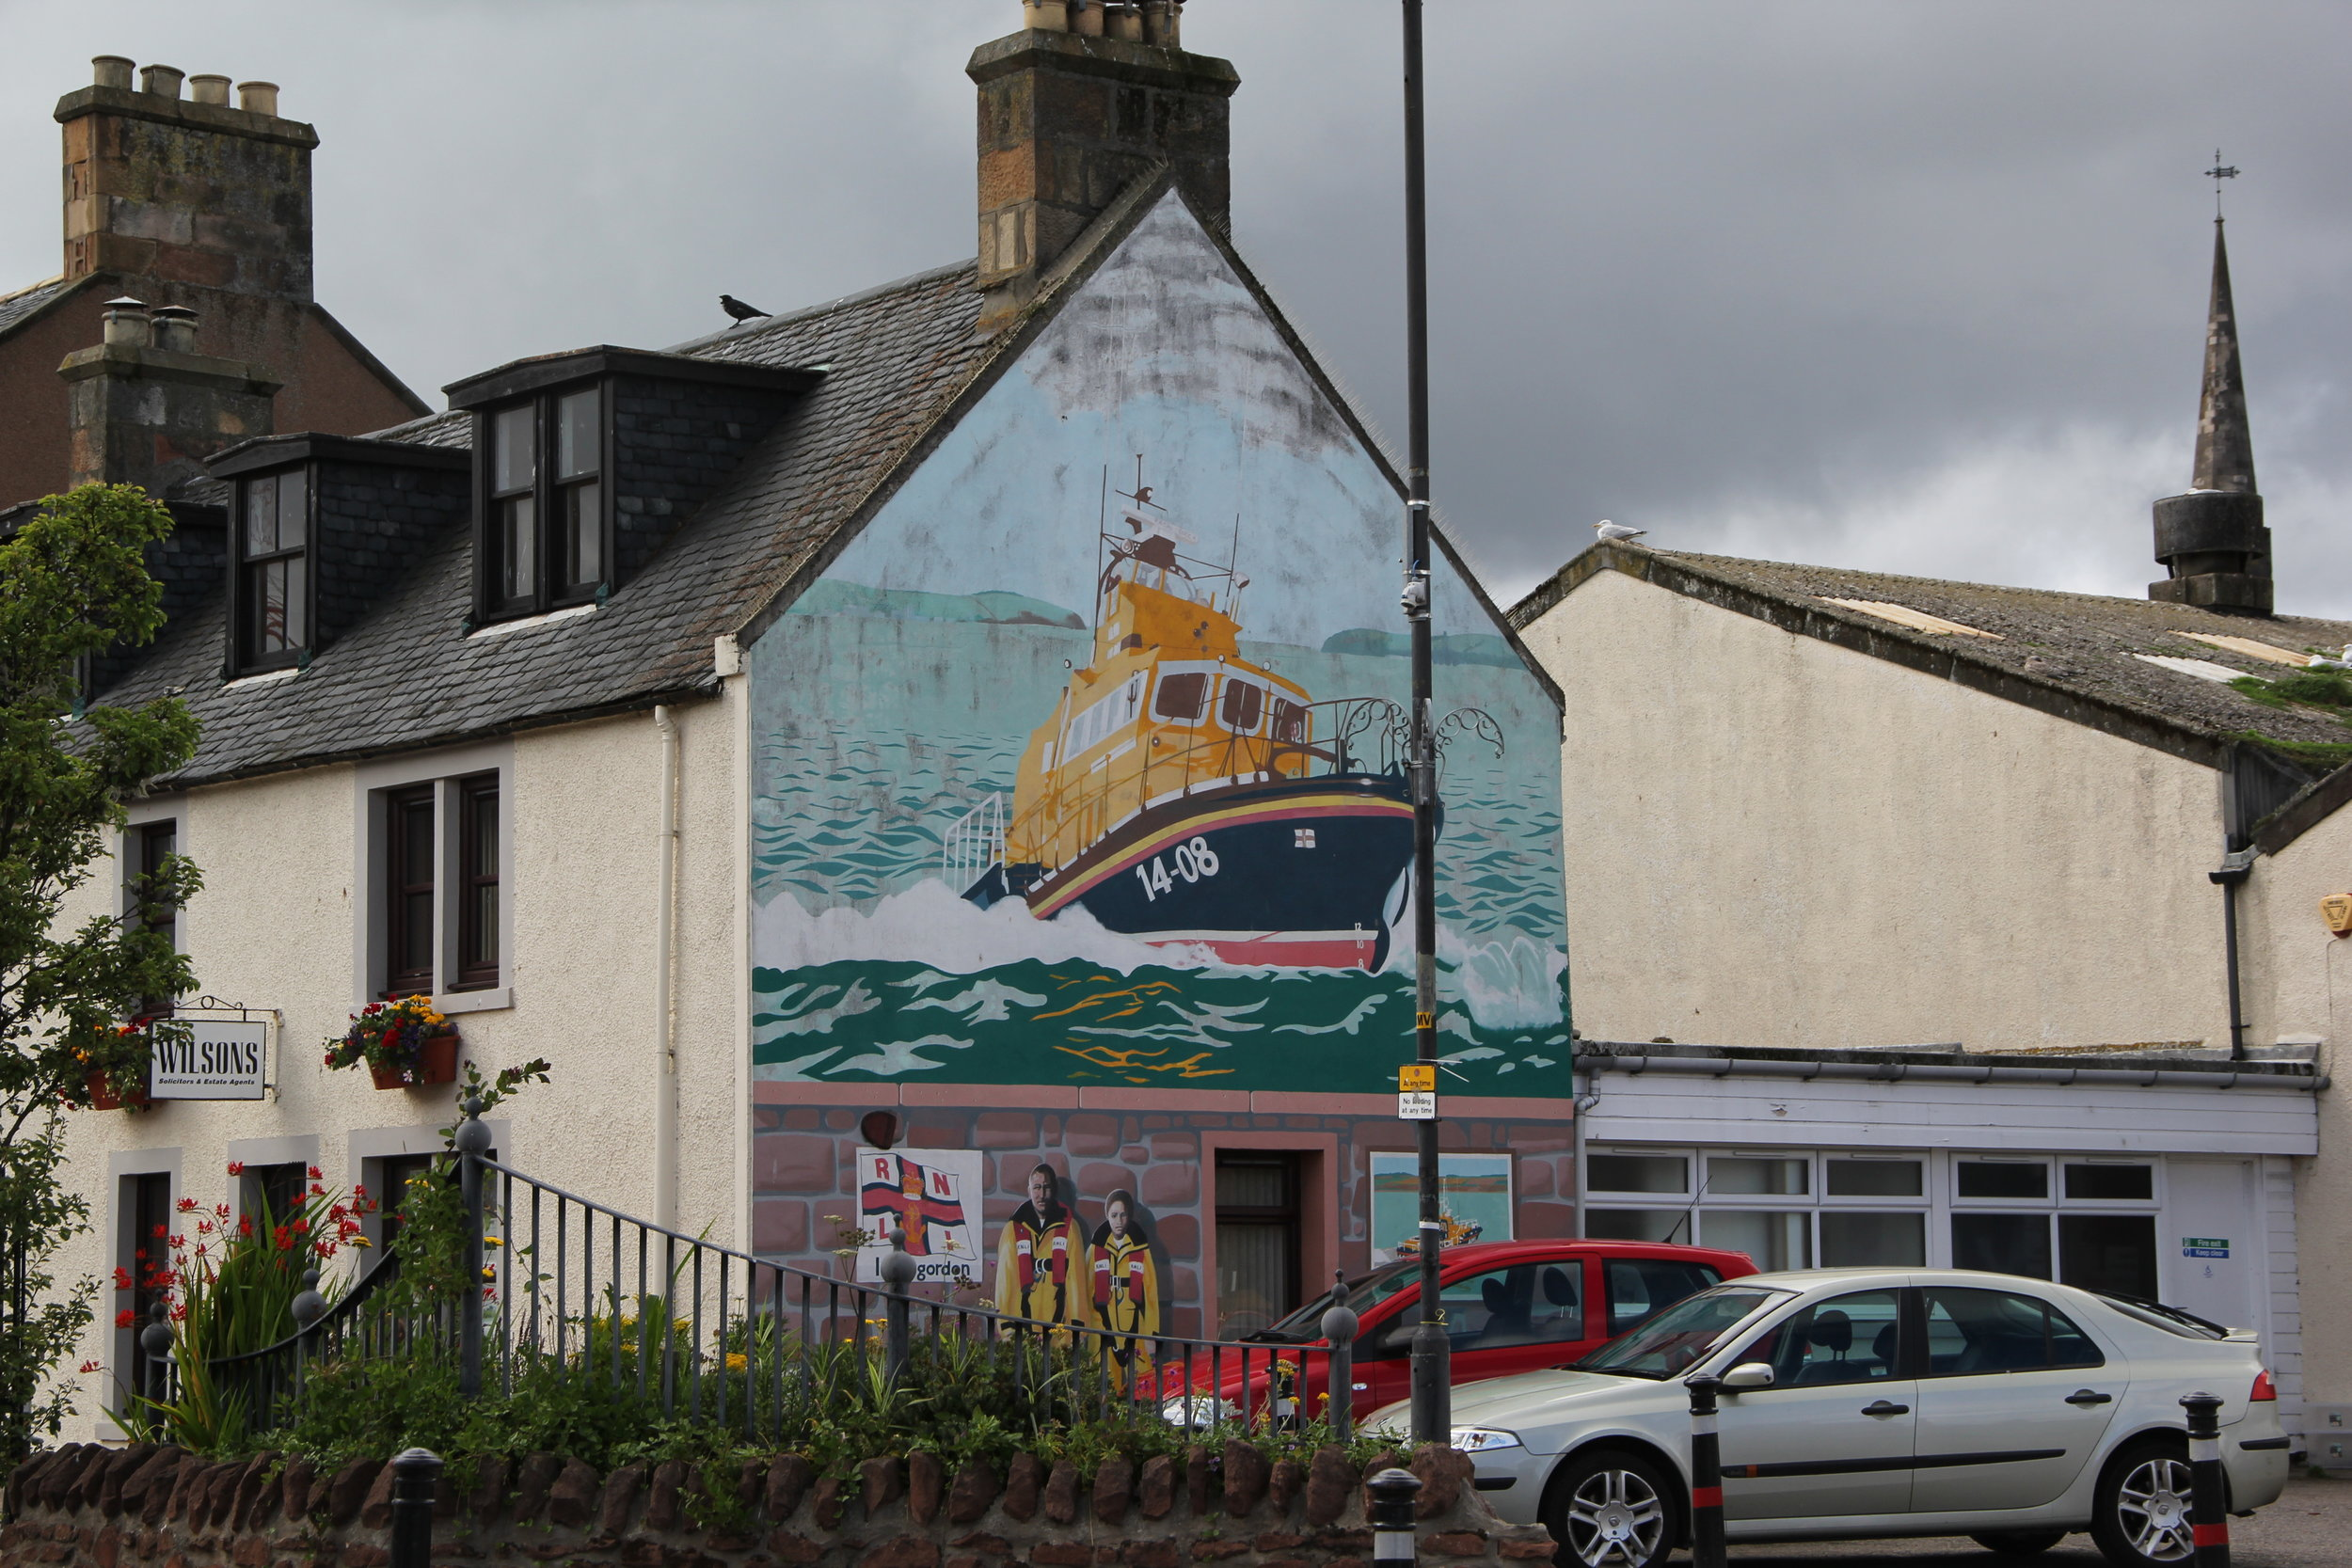 Volunteer Special some of the rescue scenes and the Tugboat Mural, Invergordon, Scotland